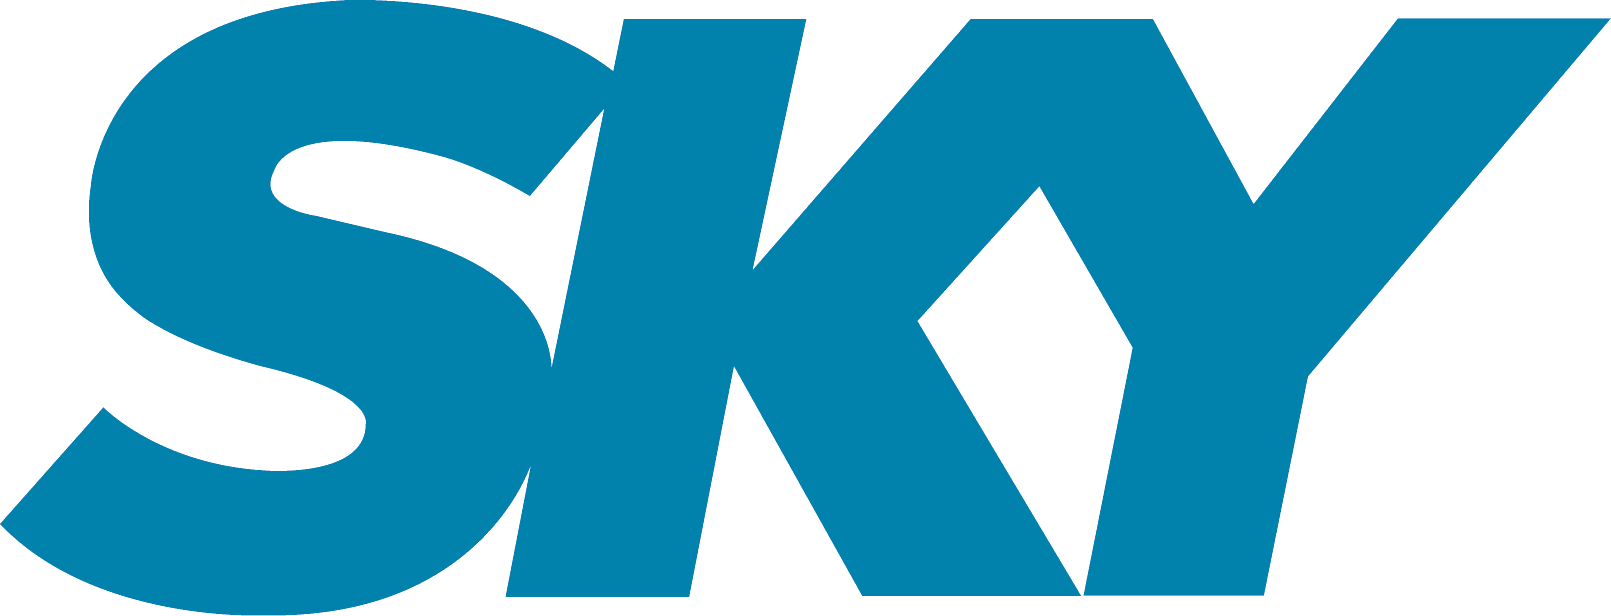 HD Sky Tv Logo Png , Free Unlimited Download #1632268.